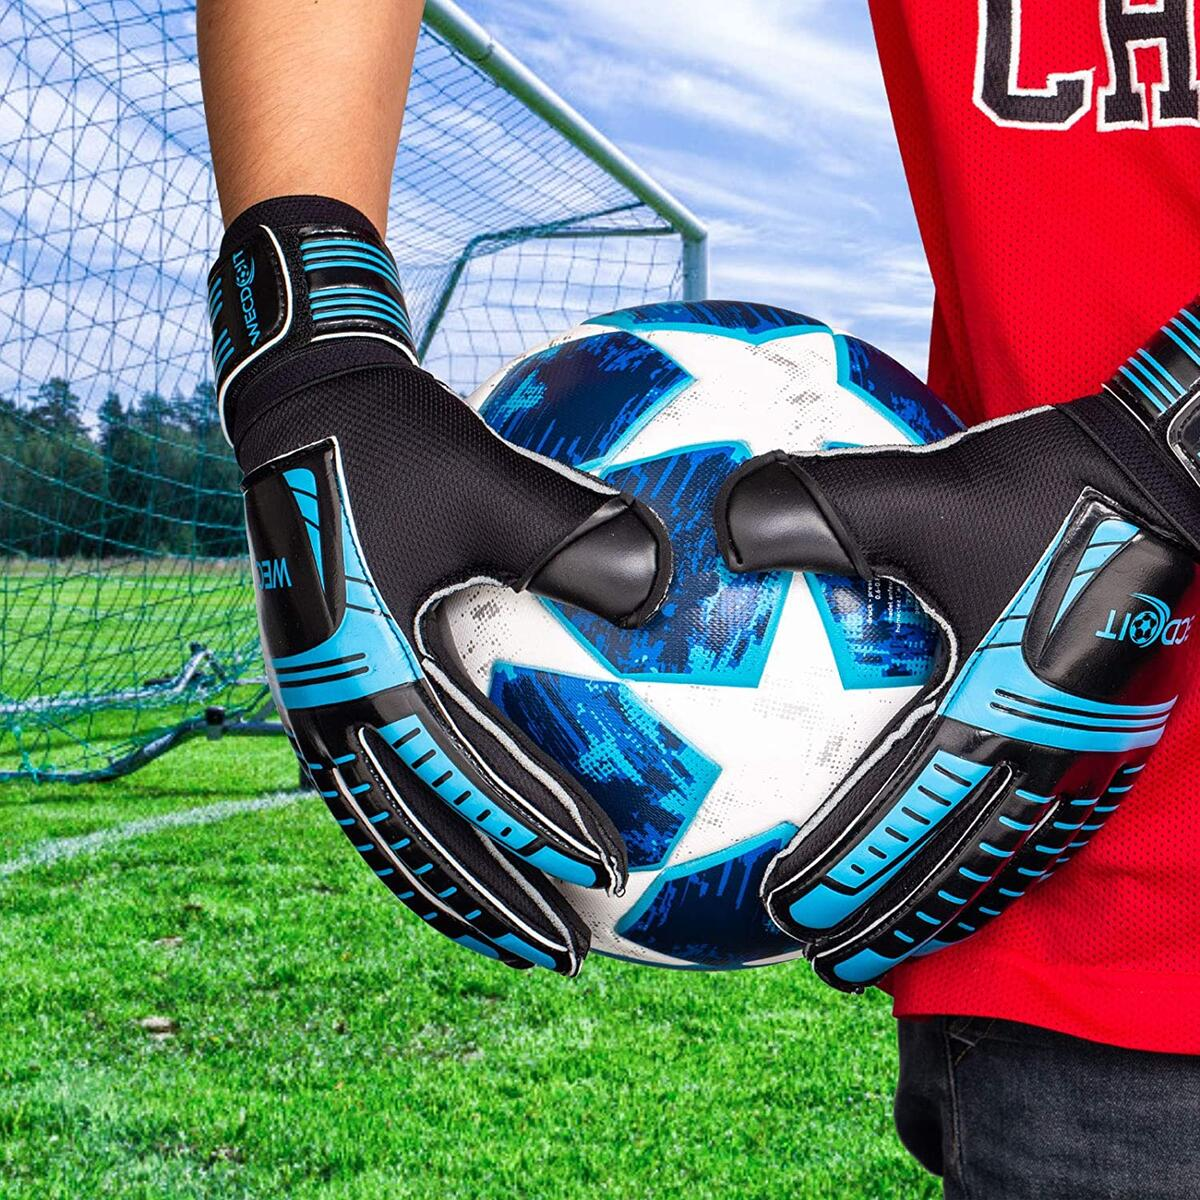 Fingersave Goalkeeper Gloves Size 6-10 - Outdoor Soccer Goalie Gloves - for Youth/Girls/Boys/Child Latex Goalie Gloves Provide Better Protection for Fingers and Wrists